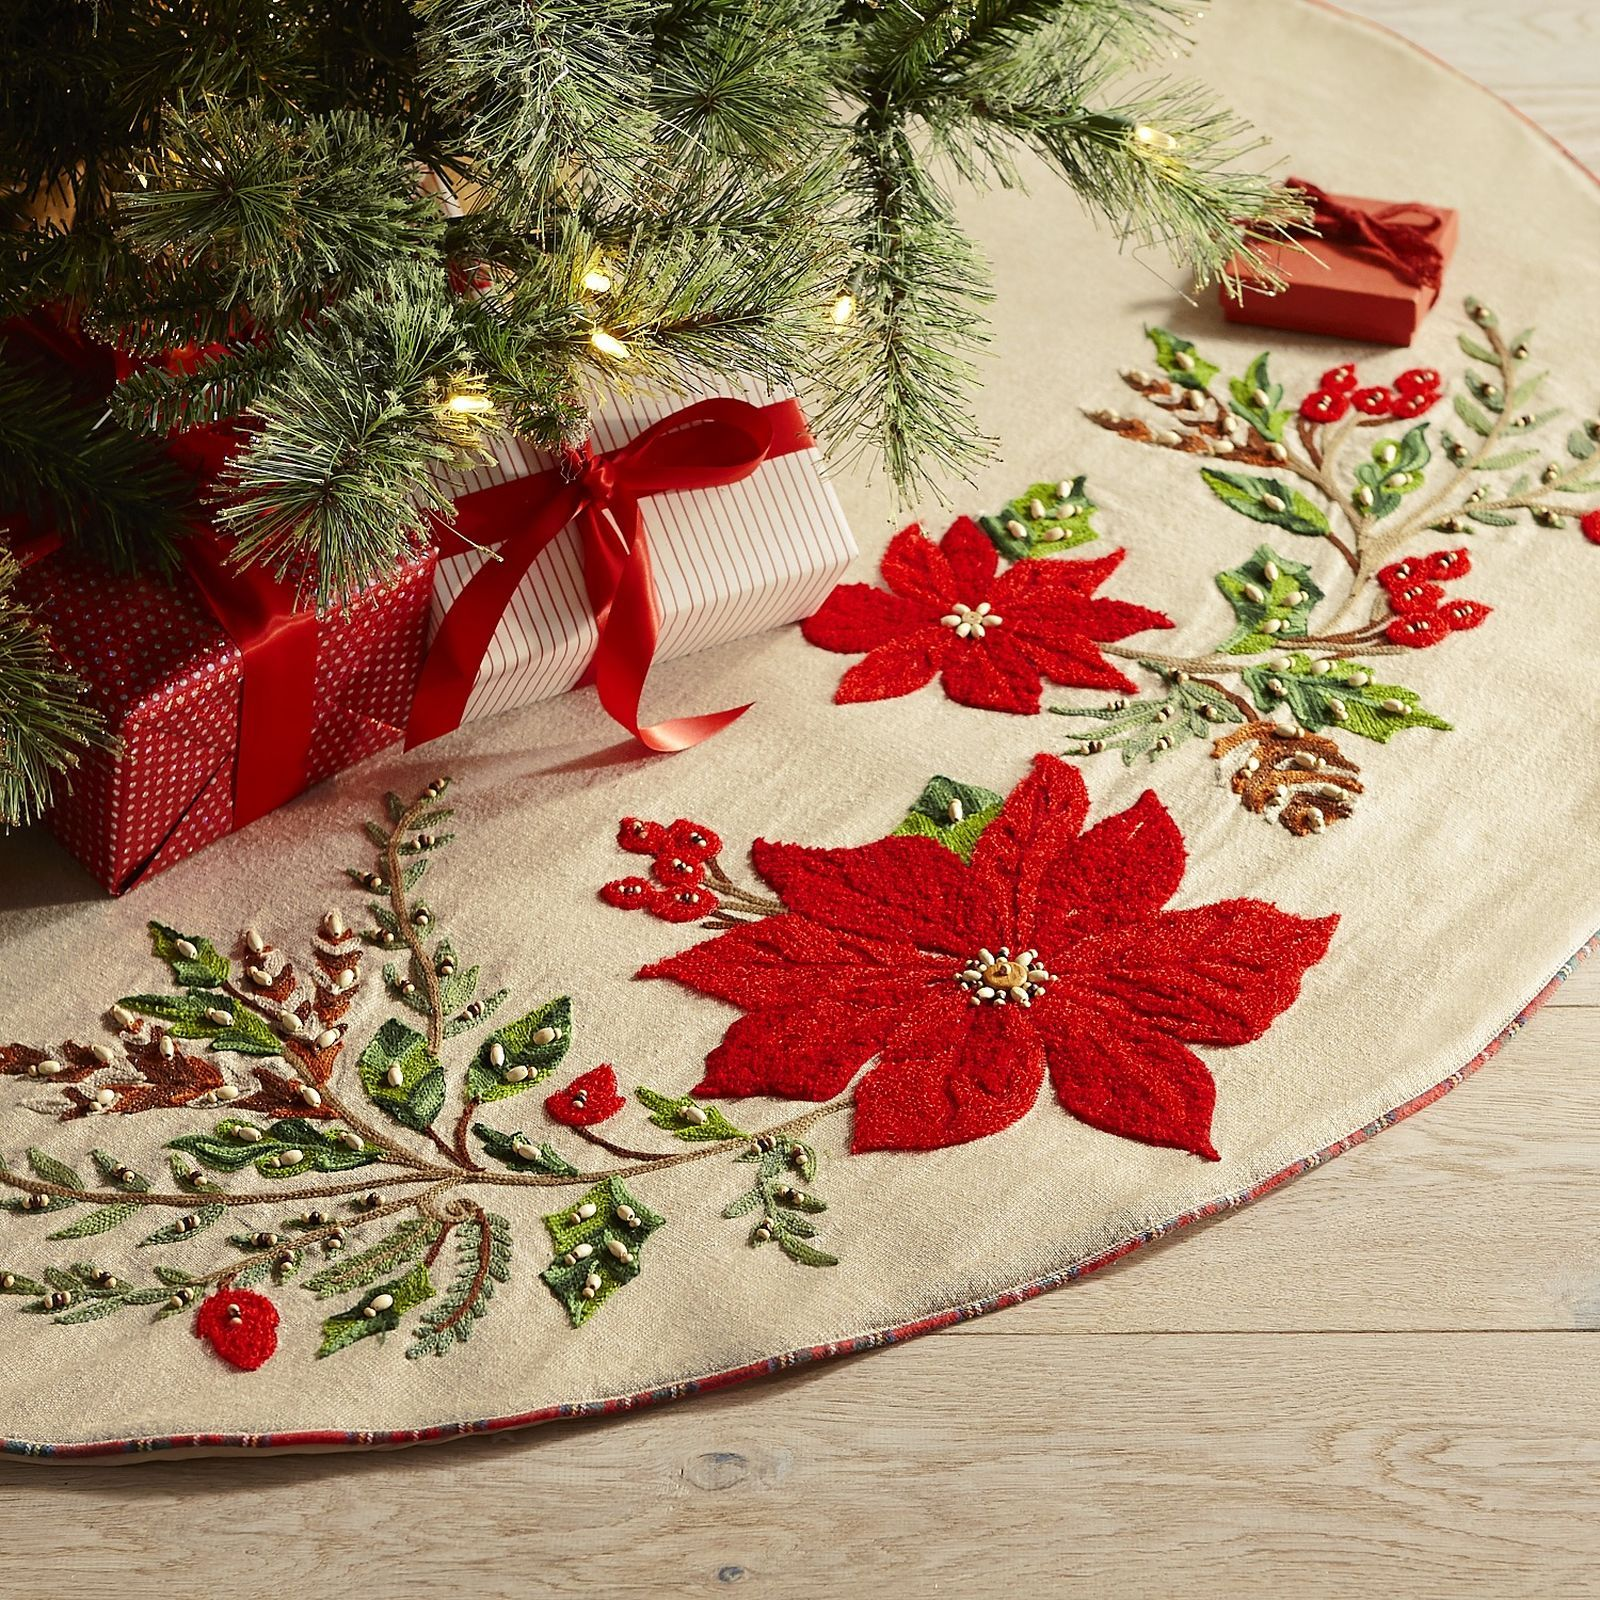 Pretty poinsettias on a soft, natural backdrop make our tree skirt an elegant addition to any holiday decor. The classic embroidered motif makes a perfect foundation for beautifully wrapped presents and a perfectly decorated tree.